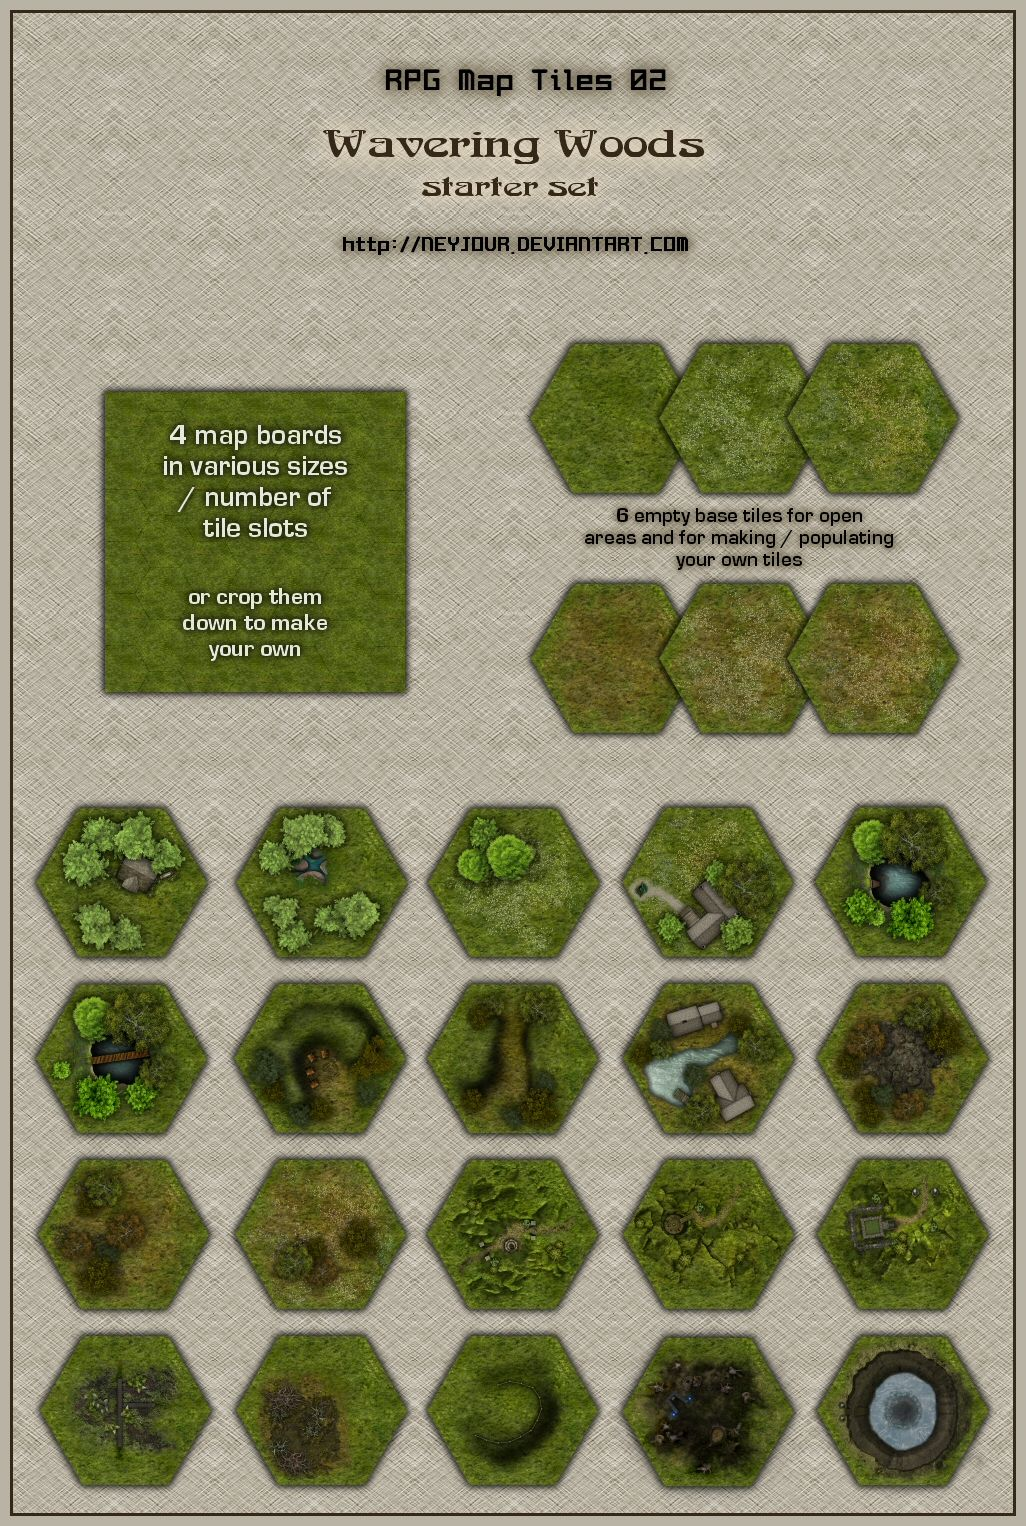 Pin By Devilchildpro On Maps Pinterest Hex Map Tiles Game And